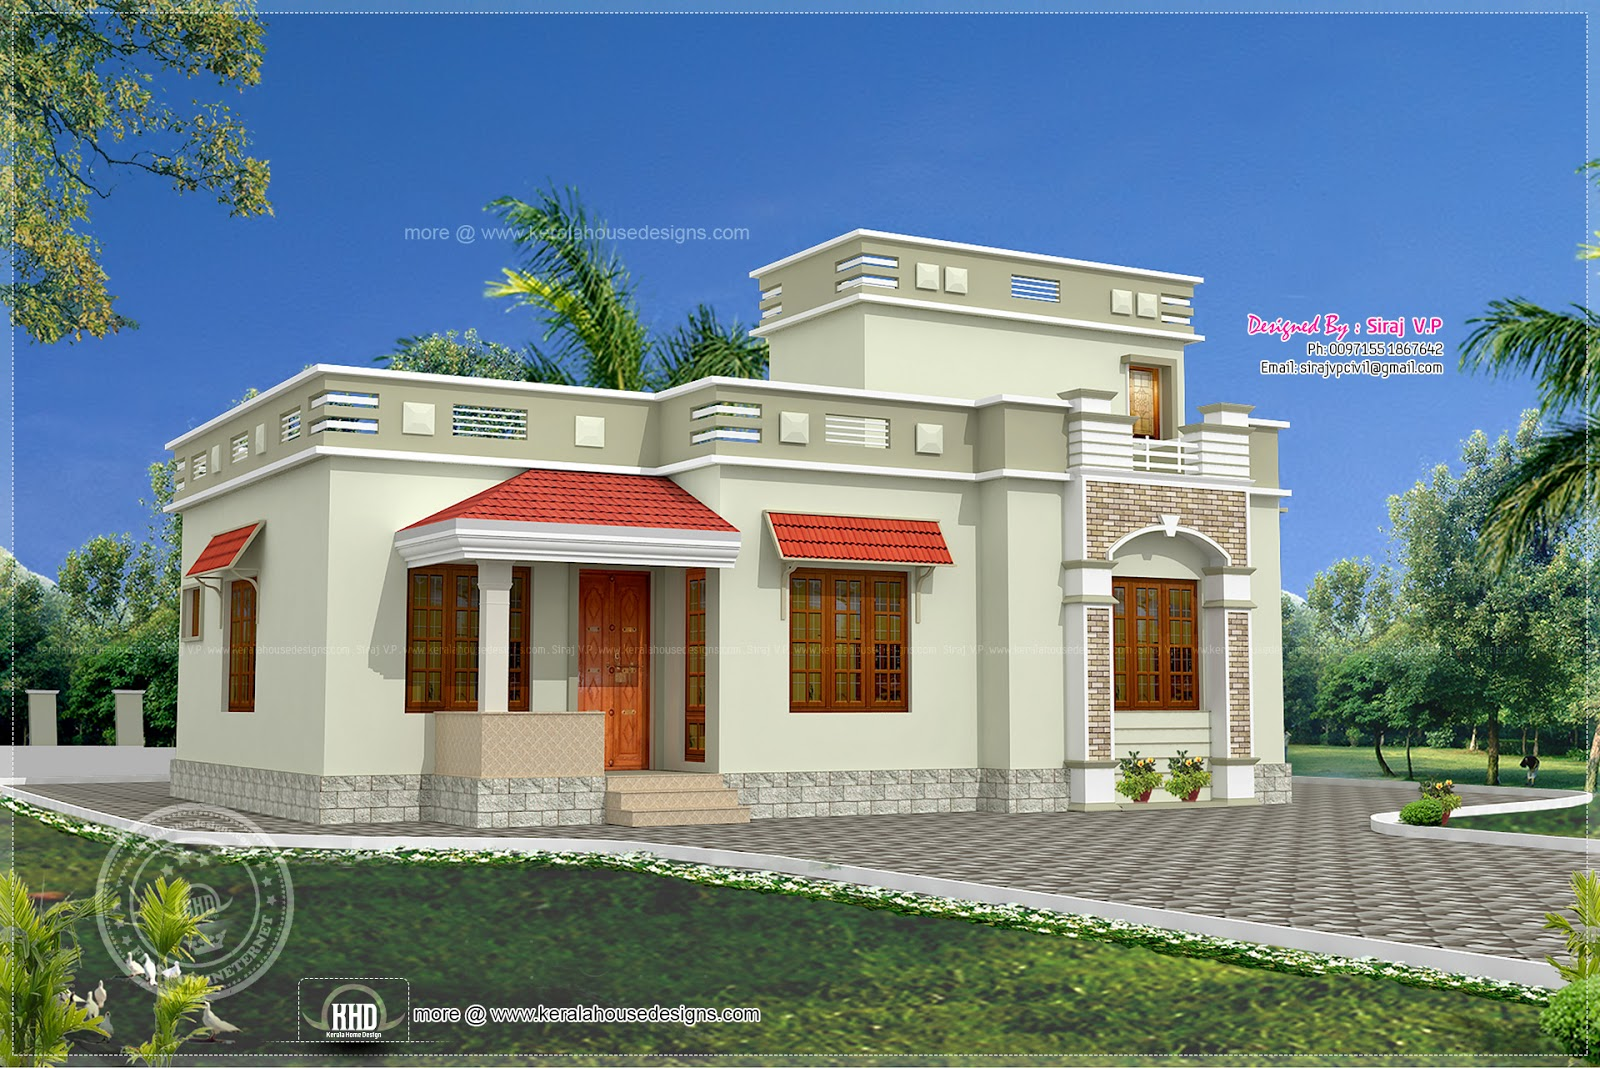 Low budget kerala style home in 1075 house for Homes on budget com